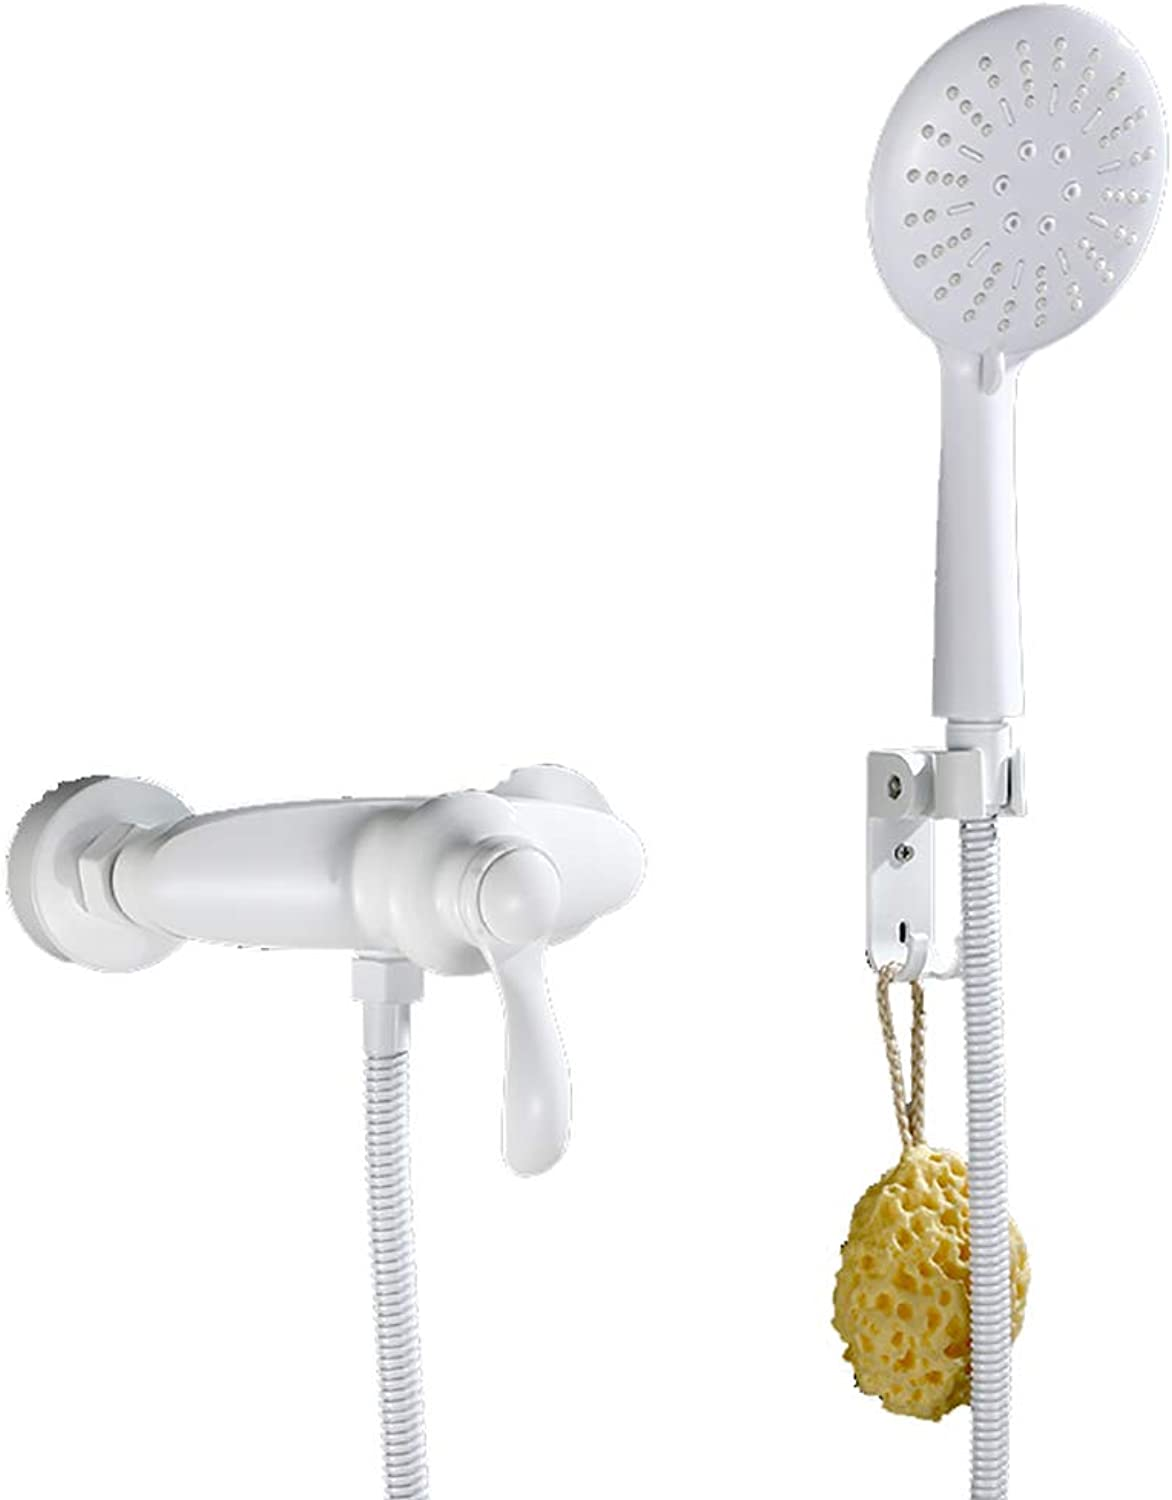 YYF-SHOWER Shower Systems European Retro Shower Set, Brass, Wall-mounted Bathroom hotel Cold hot Shower Faucet, Free Lifting (color   White, Size   D)